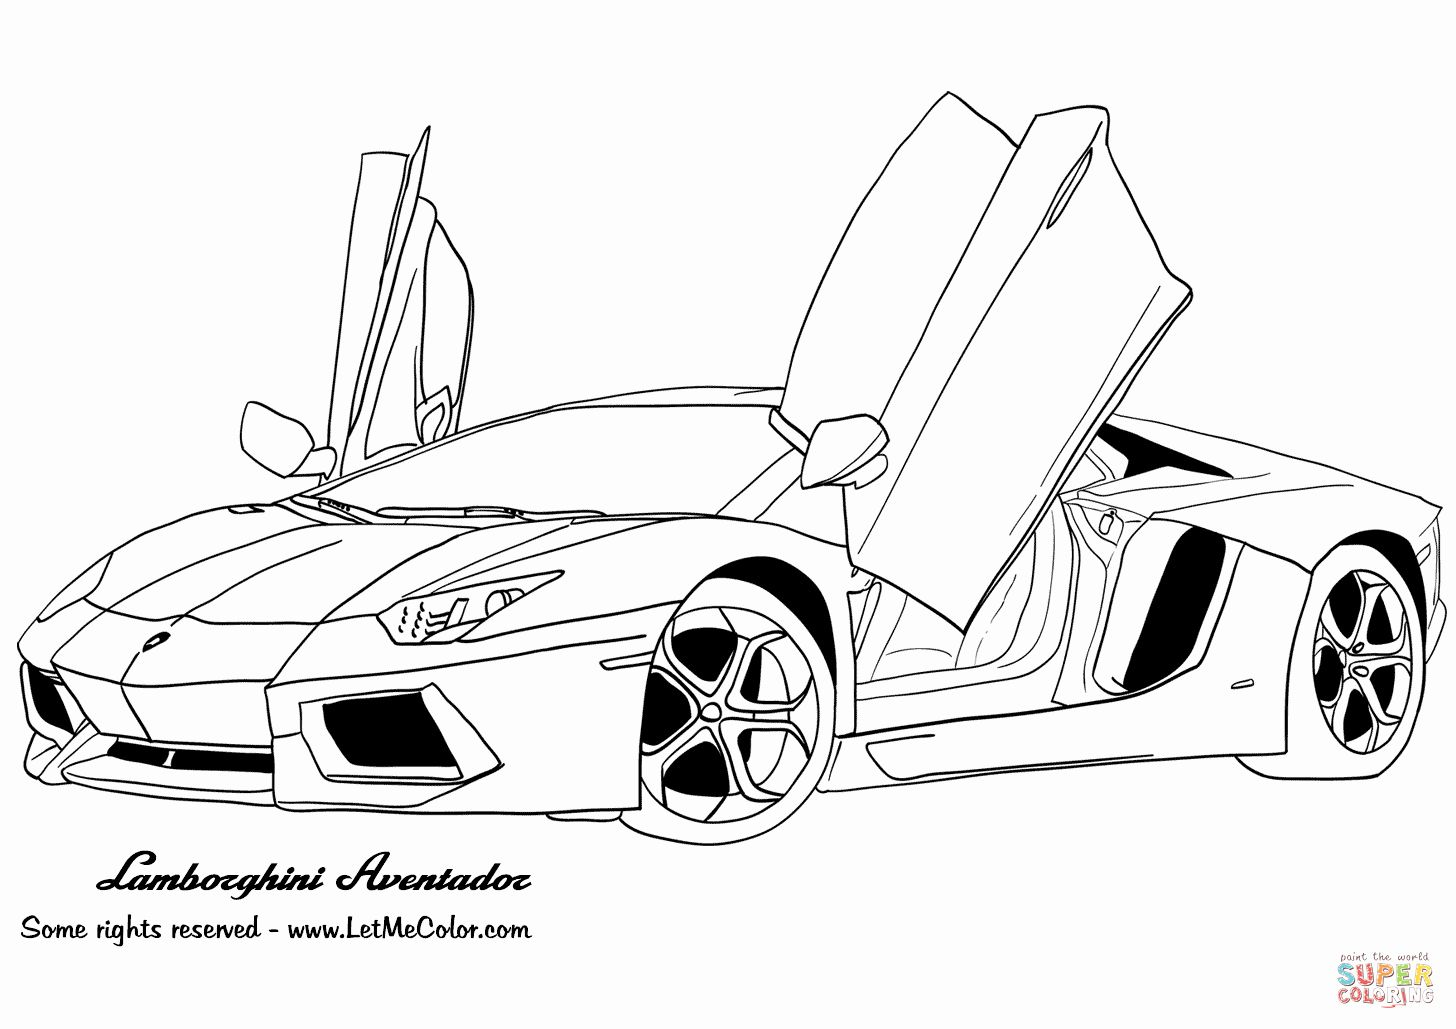 Sports Coloring Book Pdf Luxury Race Car Coloring Sheets Lovely Coloring Pages Cars Fresh Renn Cars Coloring Pages Truck Coloring Pages Race Car Coloring Pages